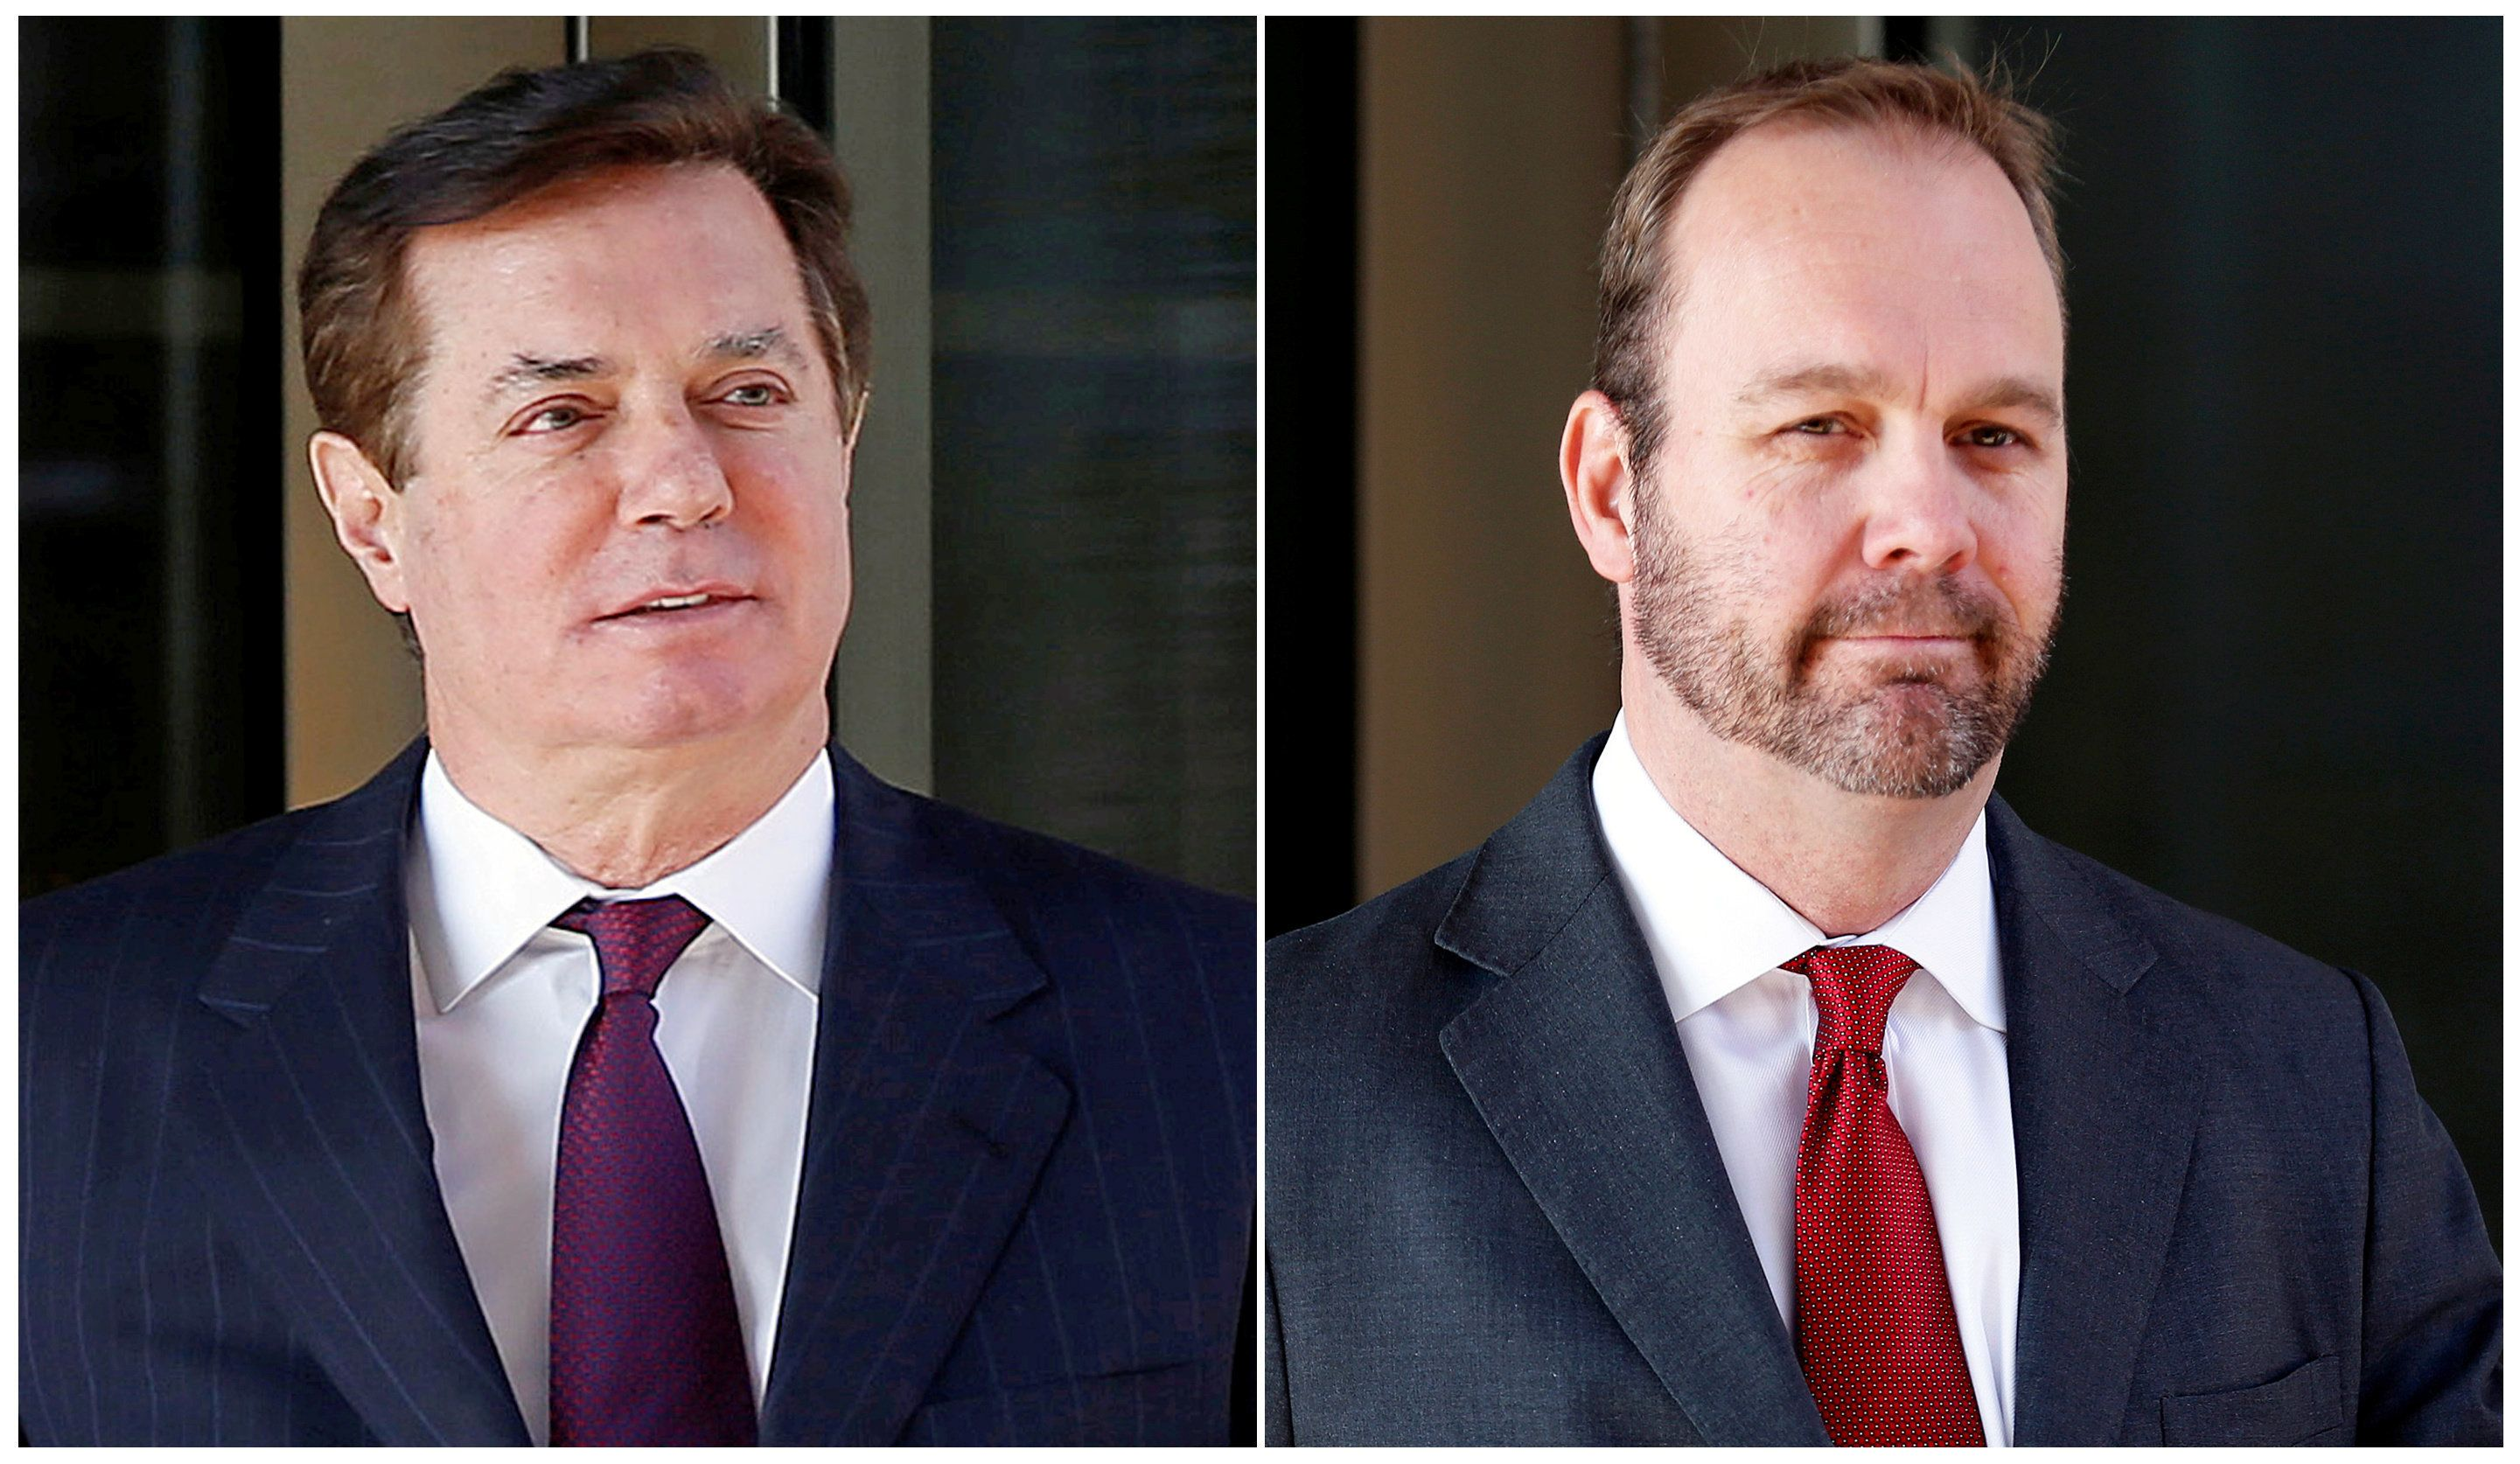 Manafort suggested Chicago banker Calk as Army secretary, according to Gates